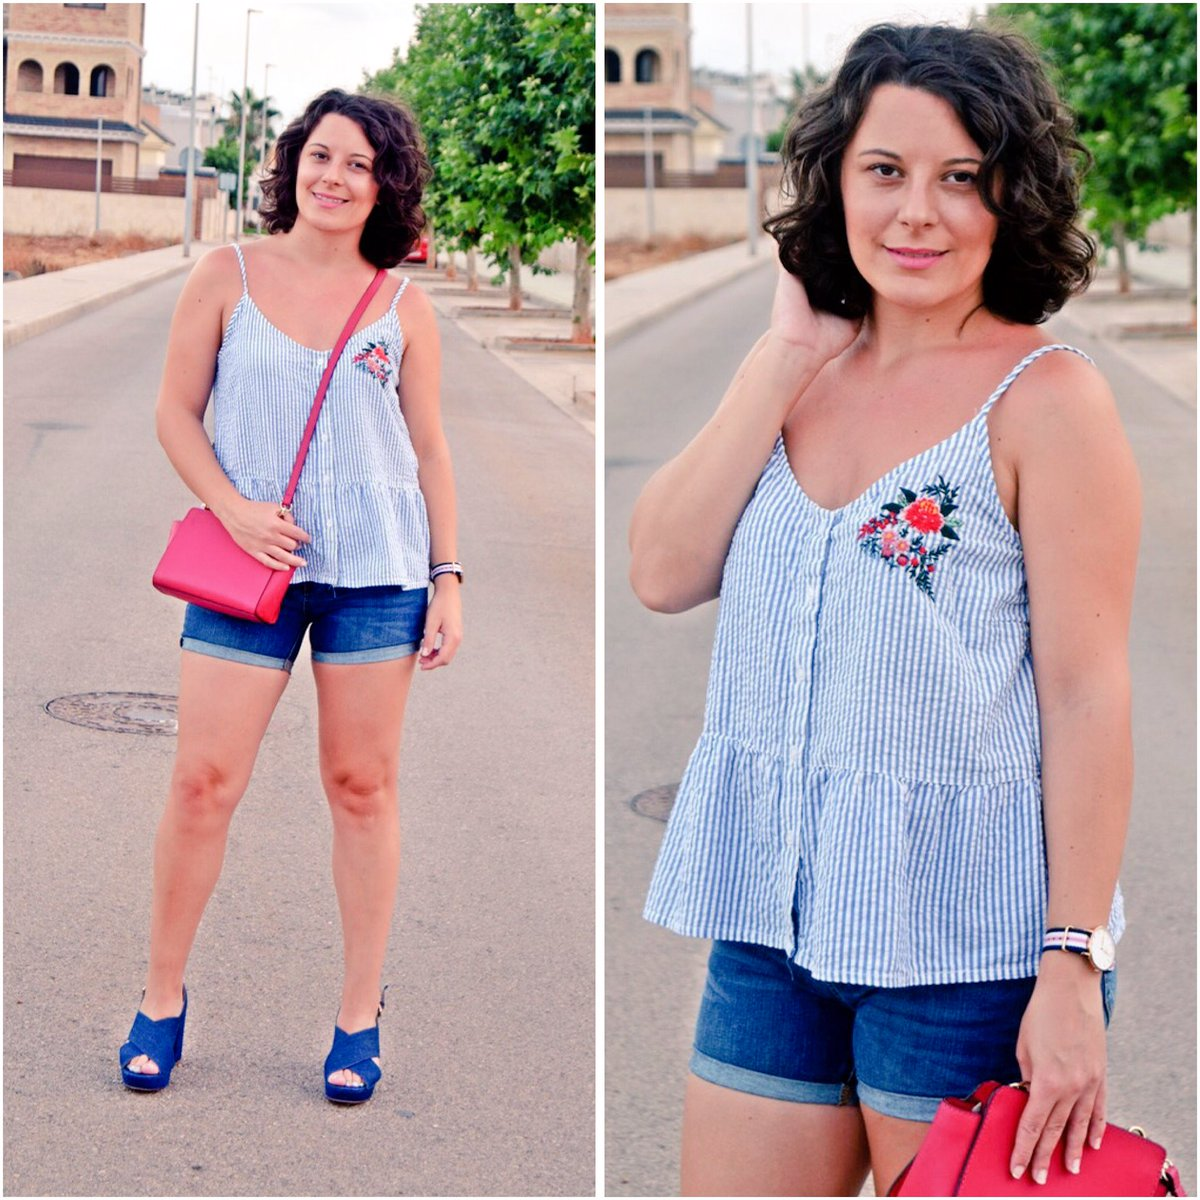 New postLook veraniego con shorts y top de rayas  https:// goo.gl/B3qpGE  &nbsp;   #ootd #lookoftheday #streetstyle #fashionblogger #influencer <br>http://pic.twitter.com/KzqPxSol7C